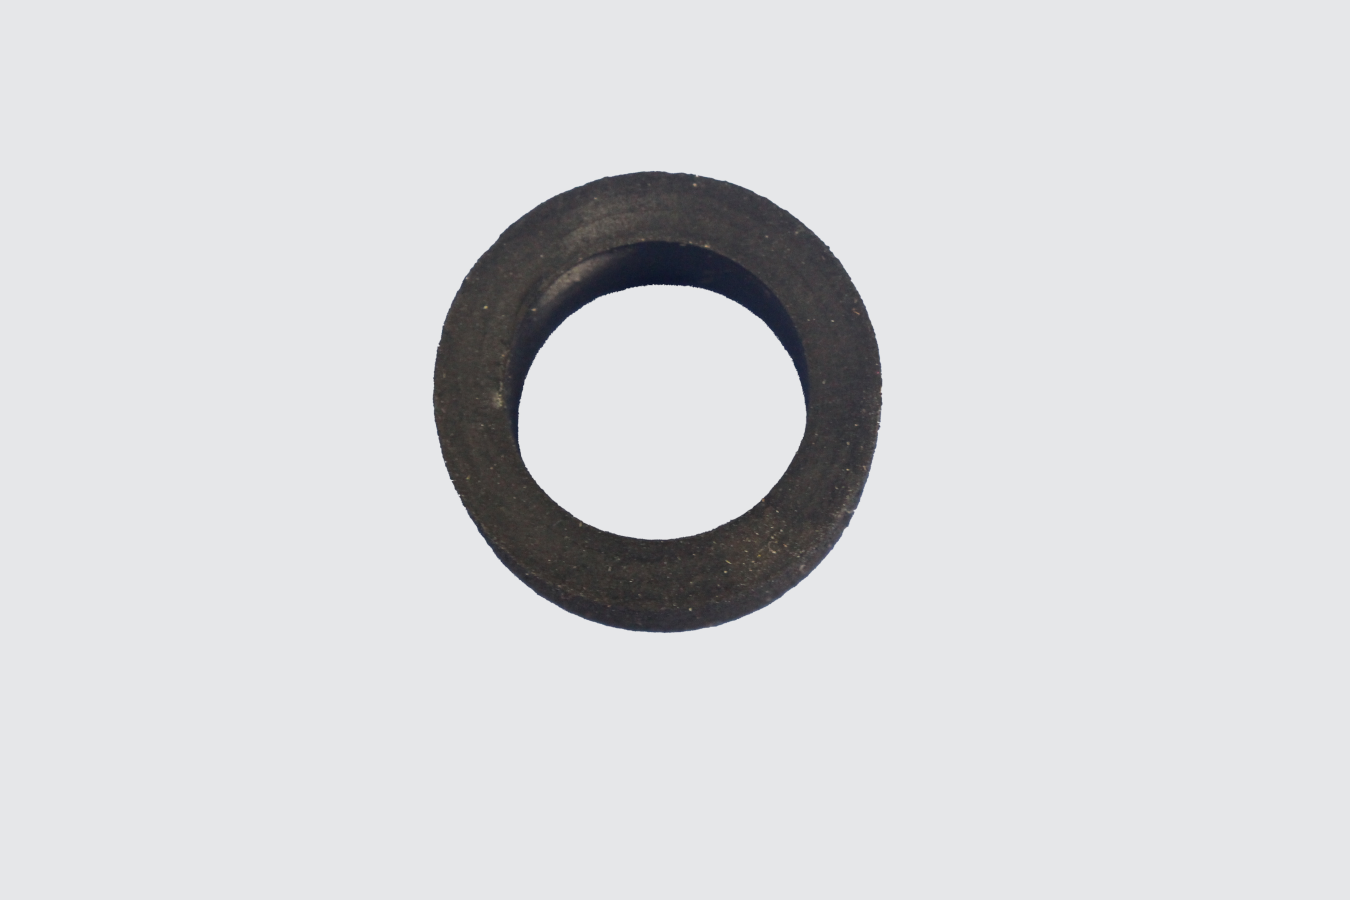 35324649-GASKET, SIGHT TUBE RUBBER